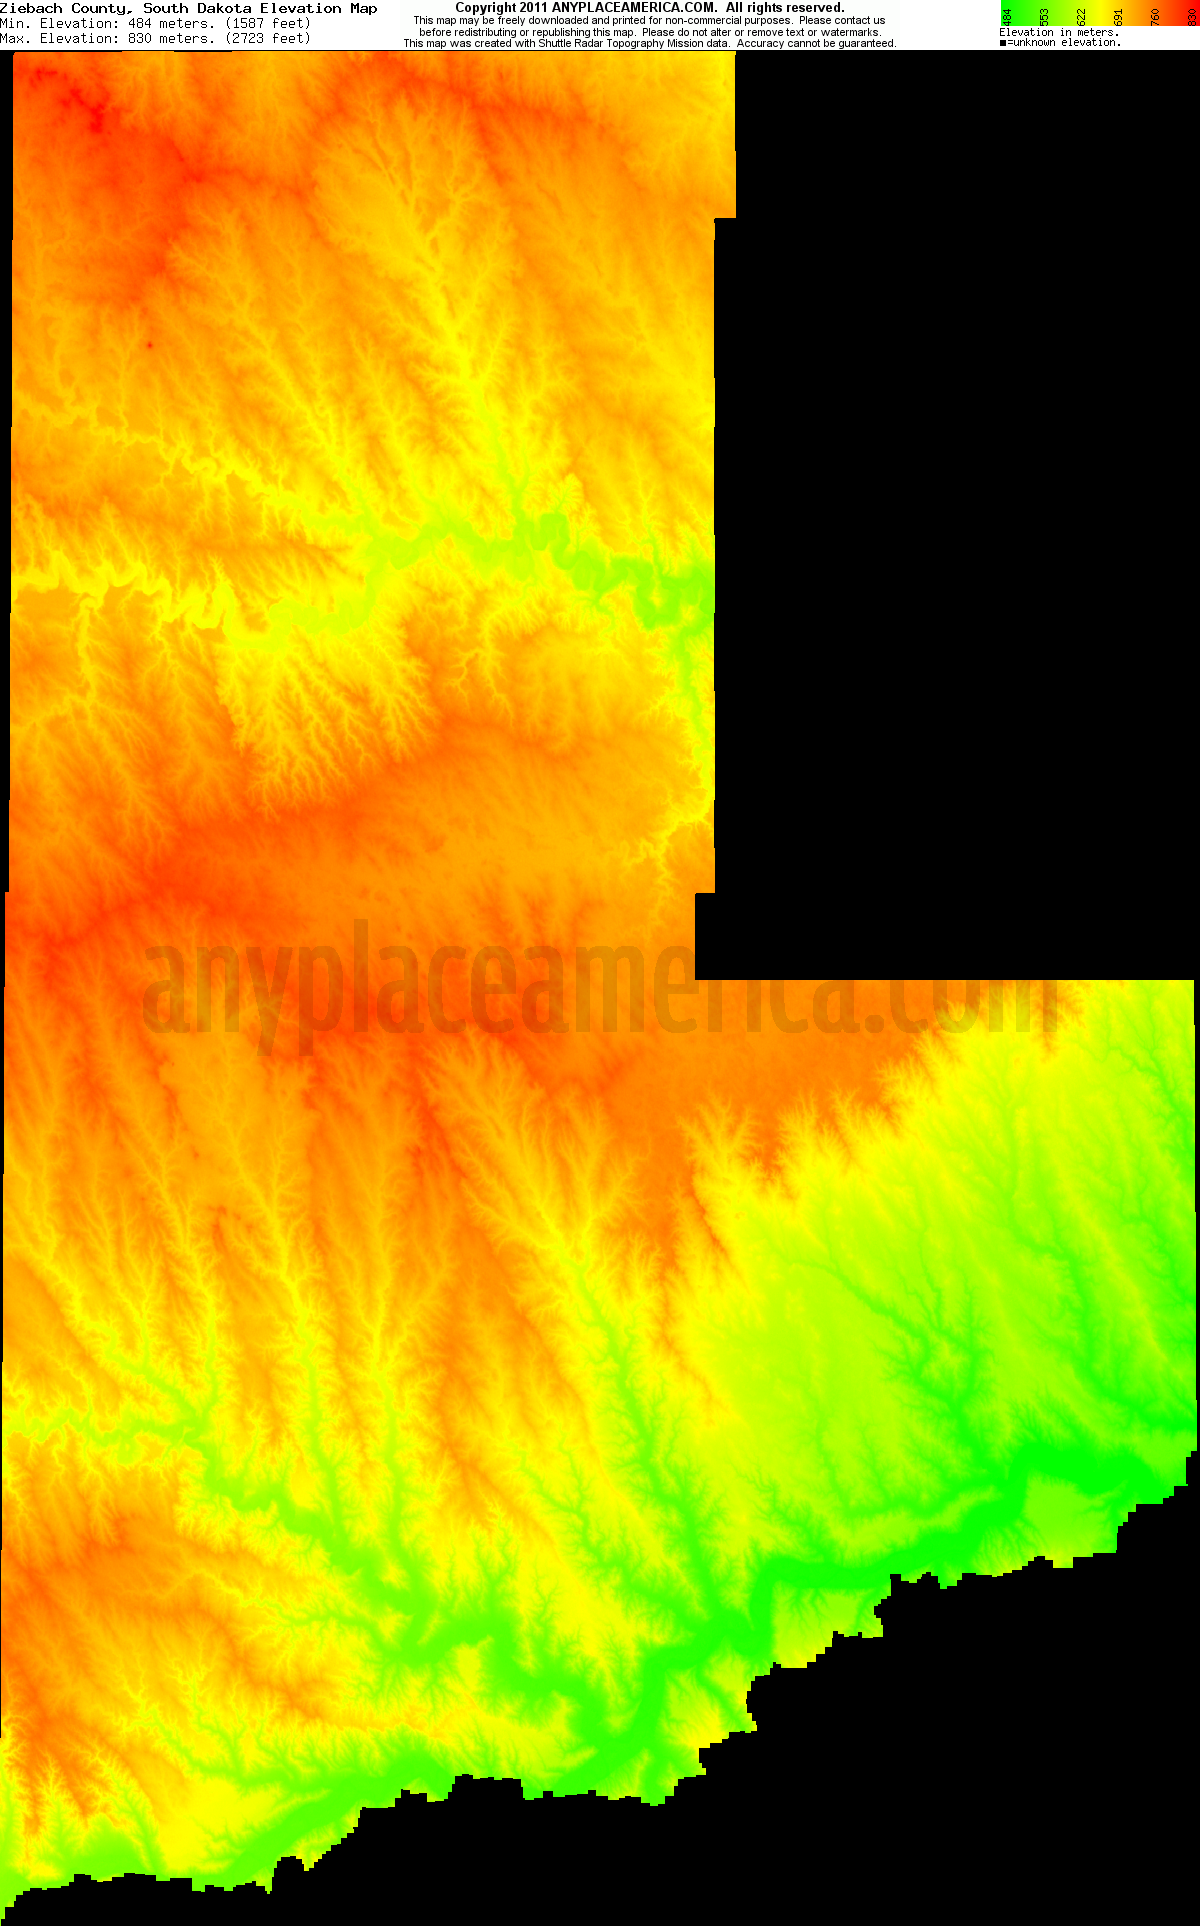 Ziebach, South Dakota elevation map